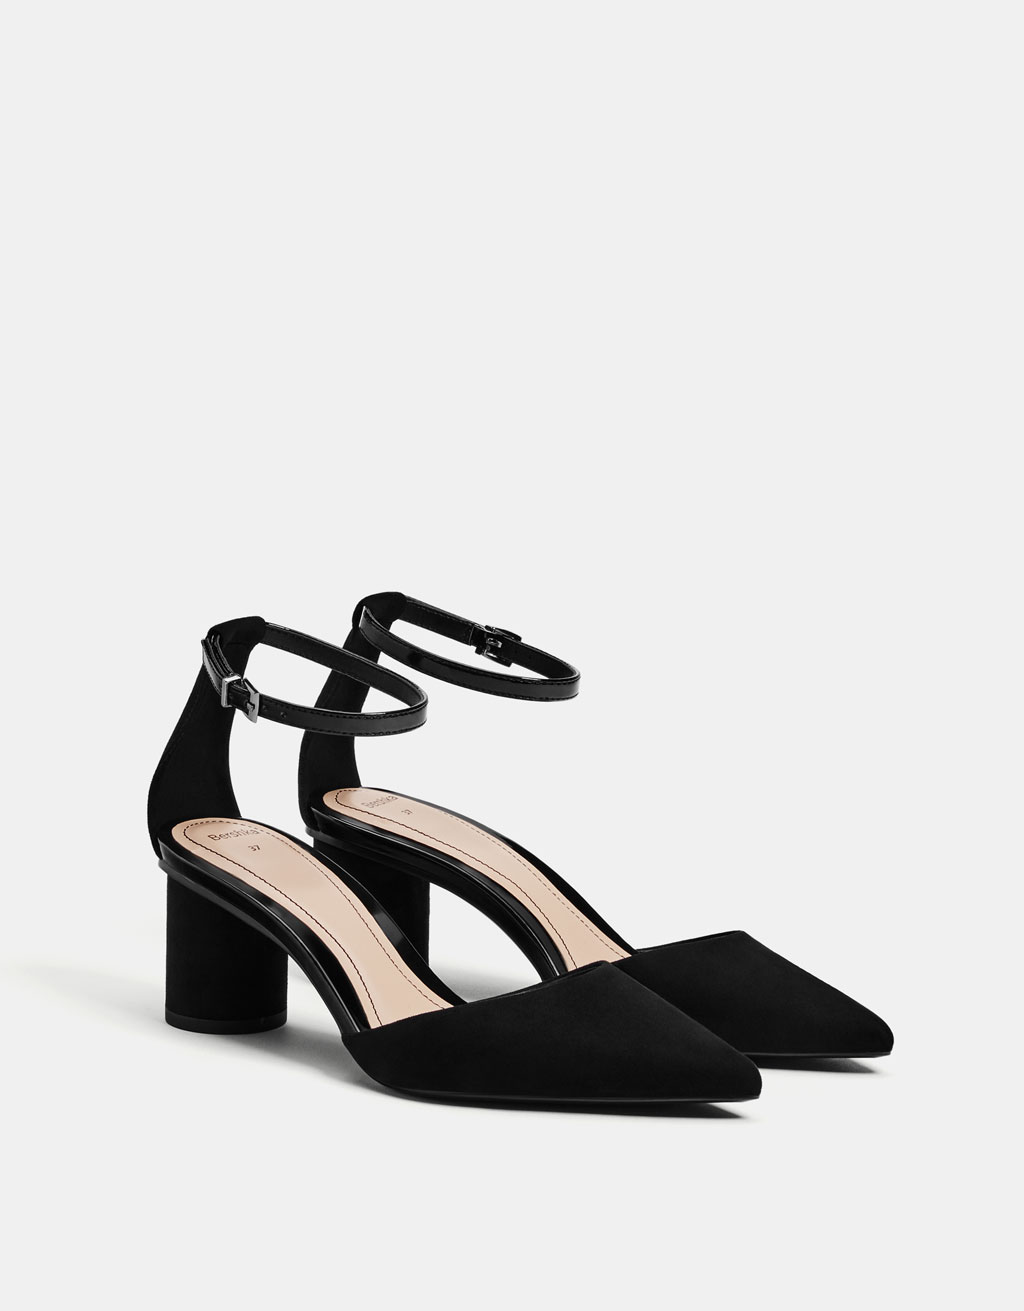 Black mid-heel d'Orsay shoes